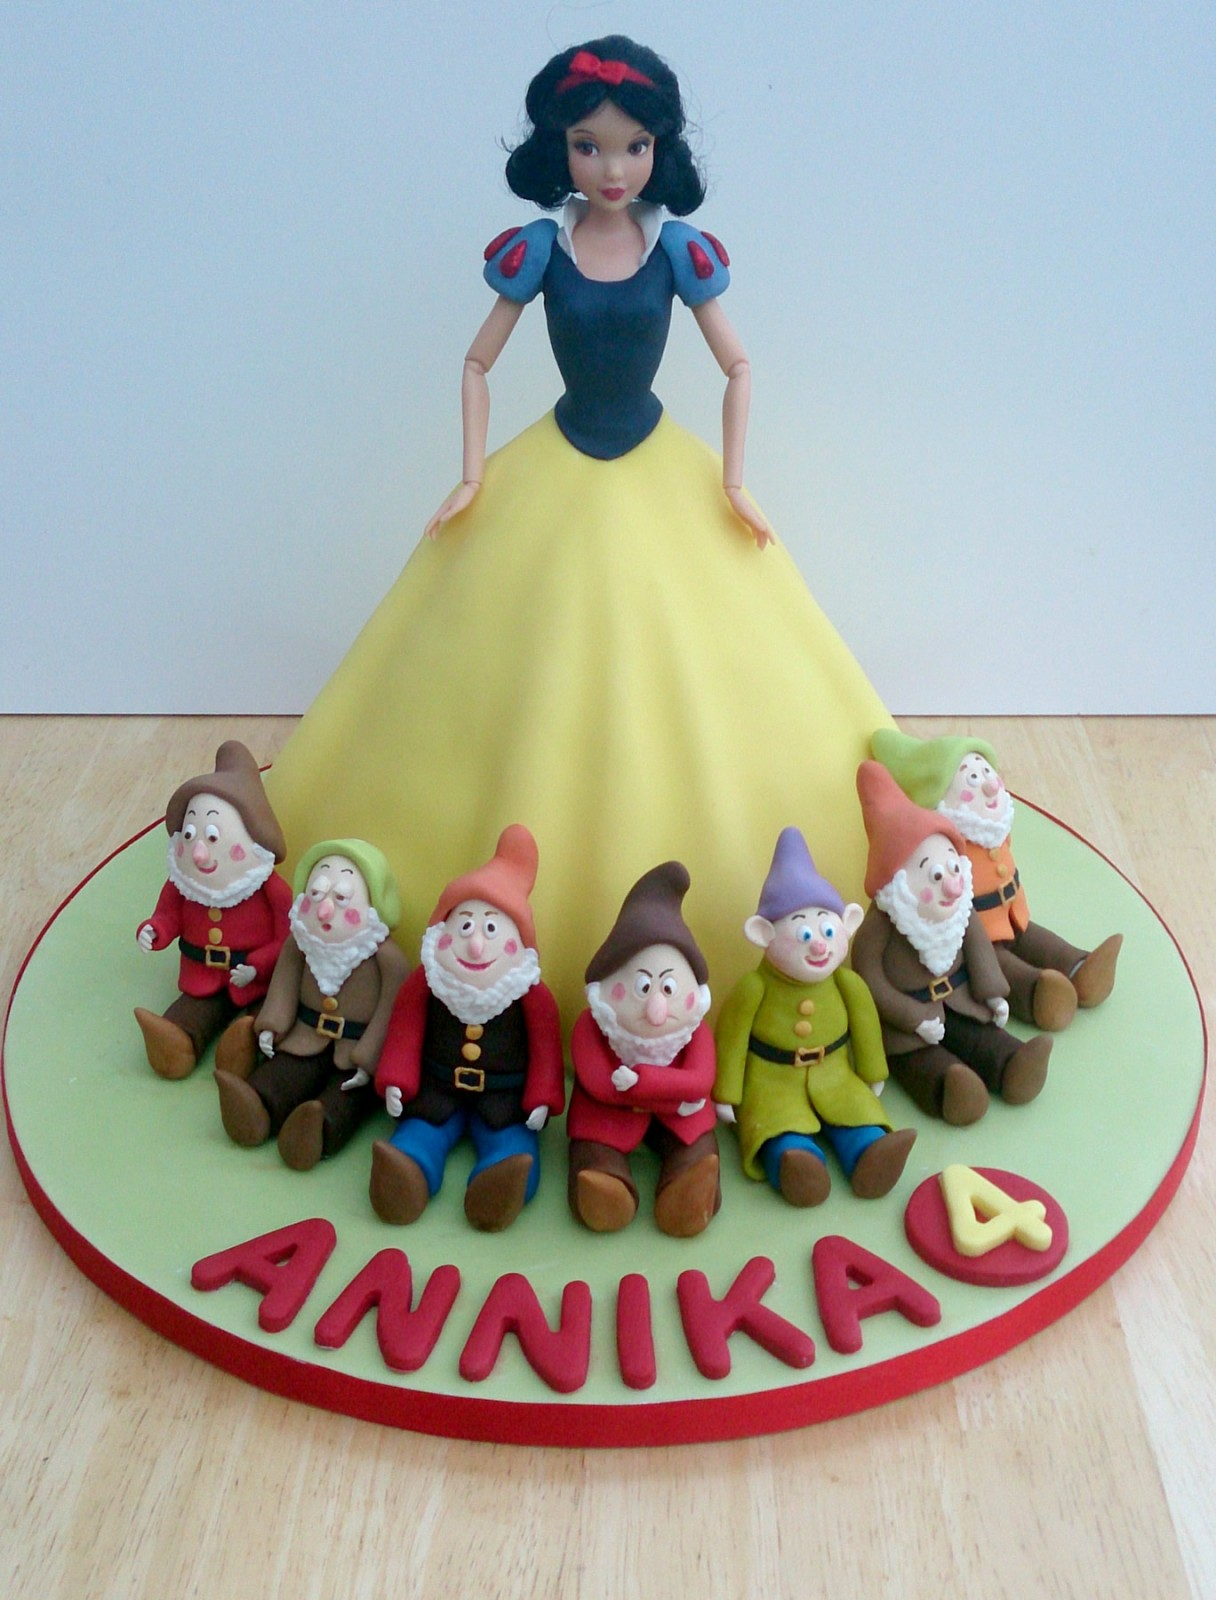 Swell Snow White And The Seven Dwarfs Birthday Cake Susies Cakes Funny Birthday Cards Online Alyptdamsfinfo